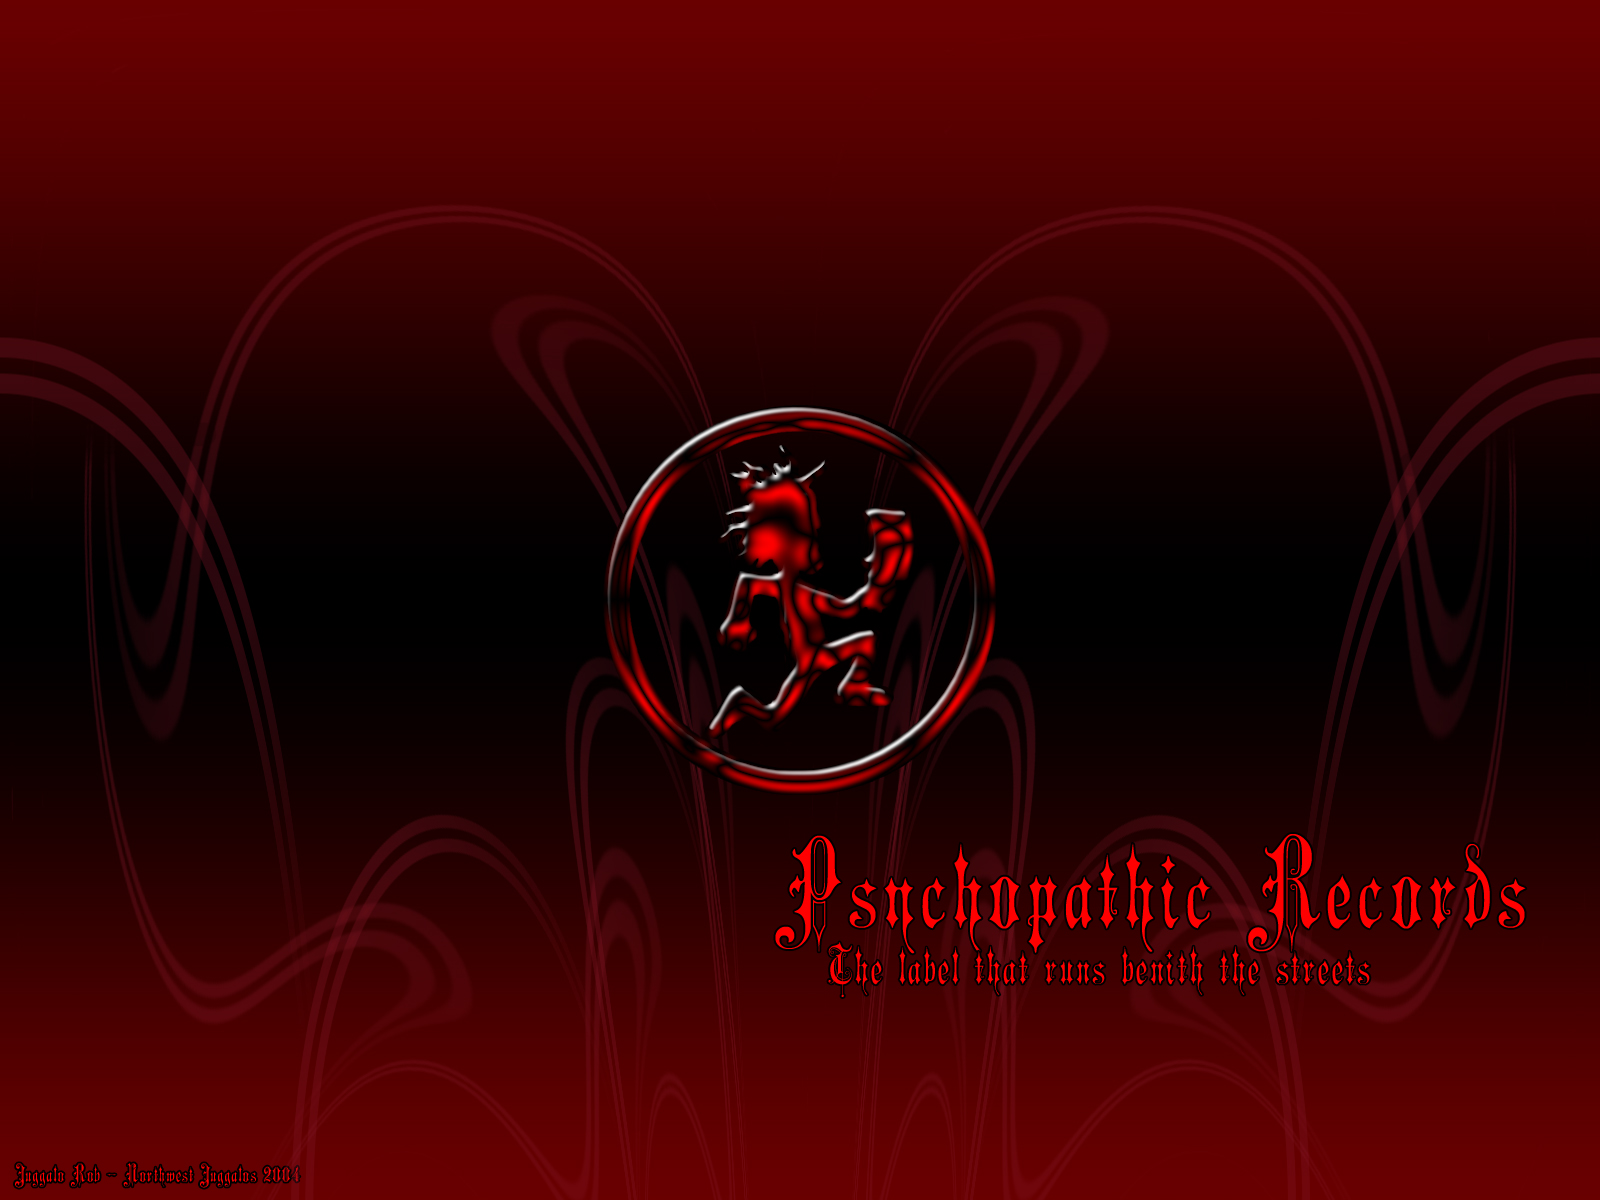 Psychopathic Records Wallpaper Psychopathic records by 1600x1200